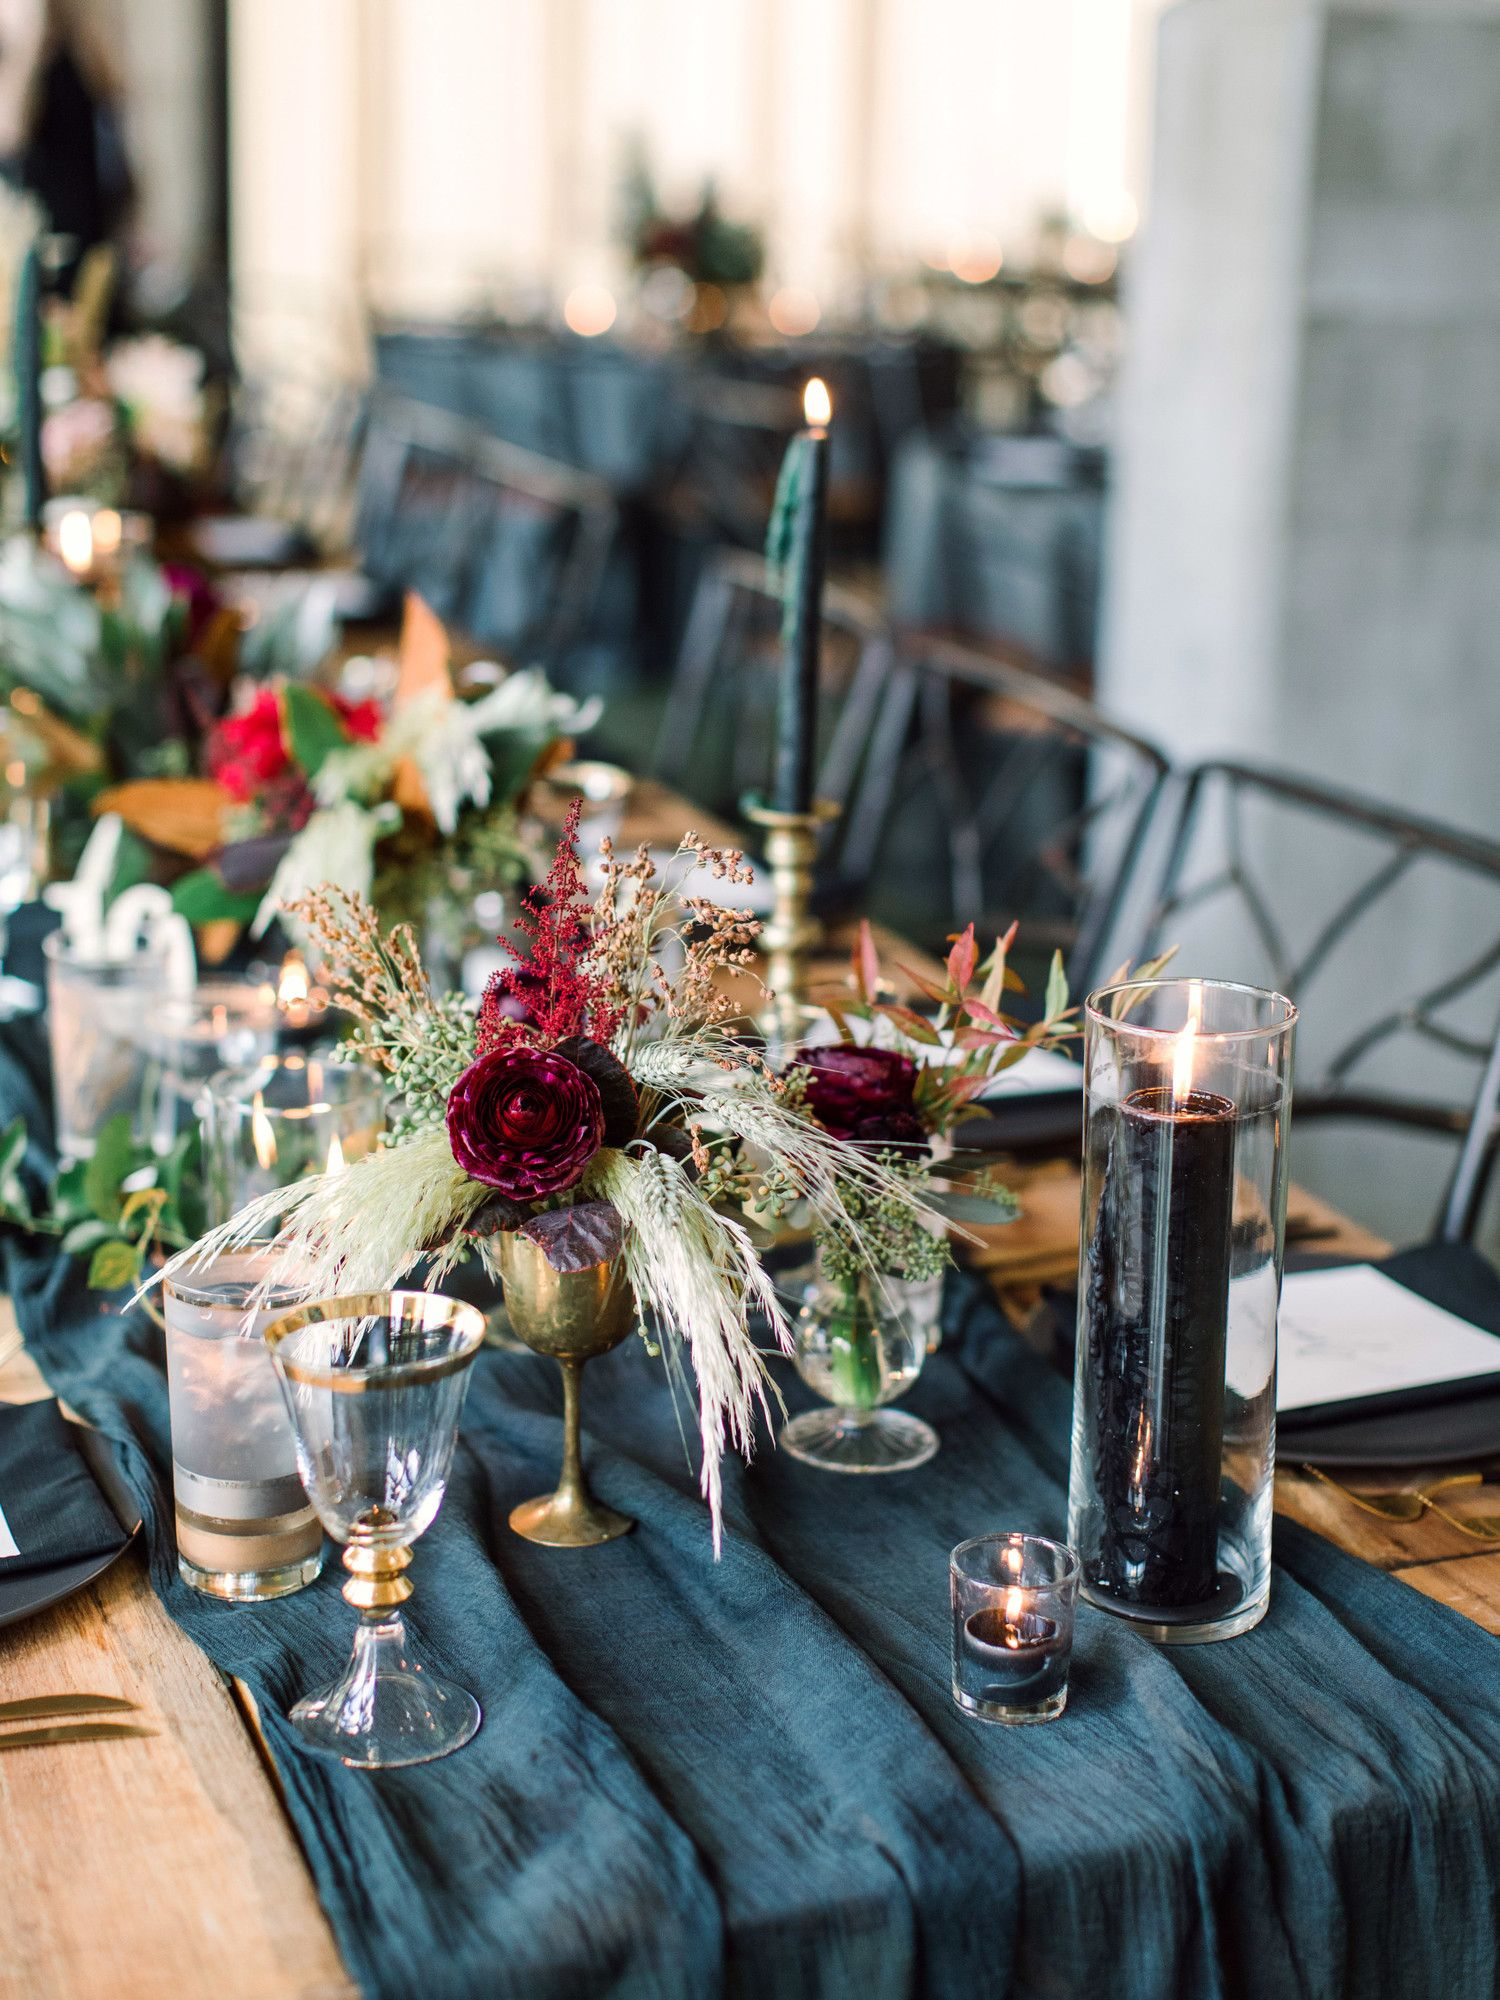 The 7 Most Popular Types of Wedding Centerpieces, Explained | Red wedding  theme, Wedding floral centerpieces, Flower centerpieces wedding